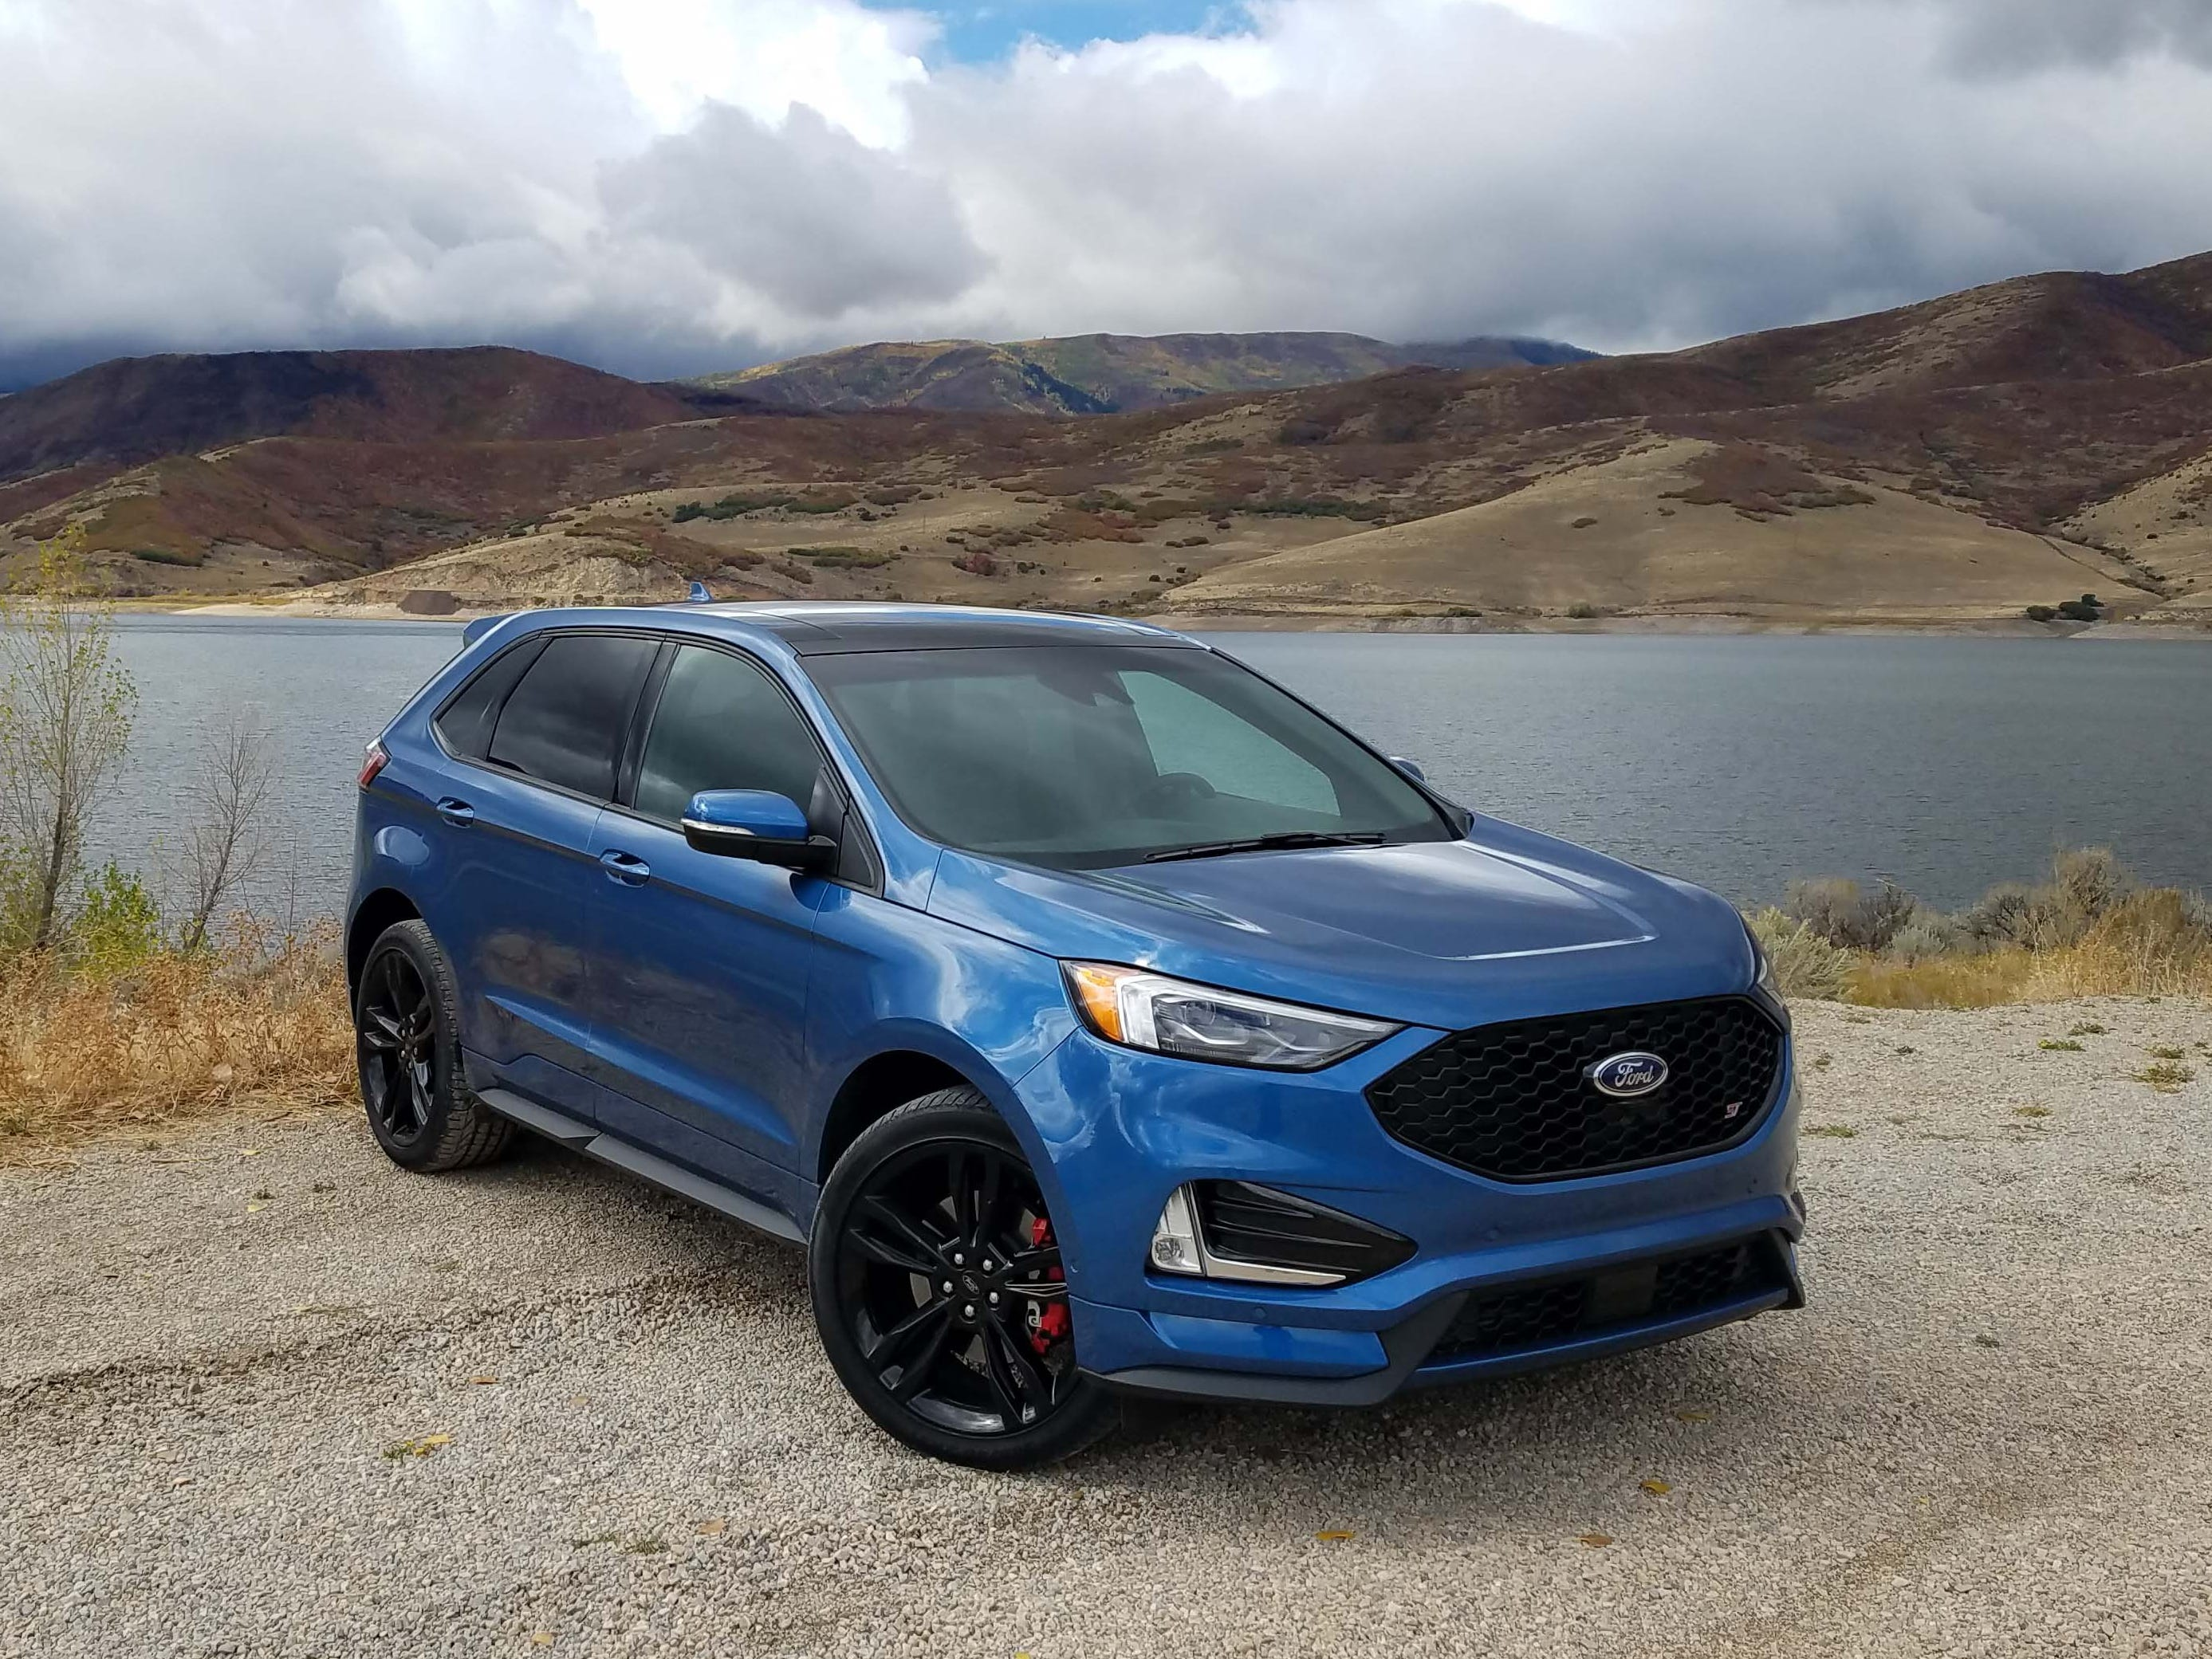 The 2019 Ford Edge ST is not your average SUV. It provides SUV performance for an affordable price compared to the Jeep Trackhawk and Mercedes-AMG GLE. Offered in an exclusive Ford Performance Metallic Blue, it's the color to get.